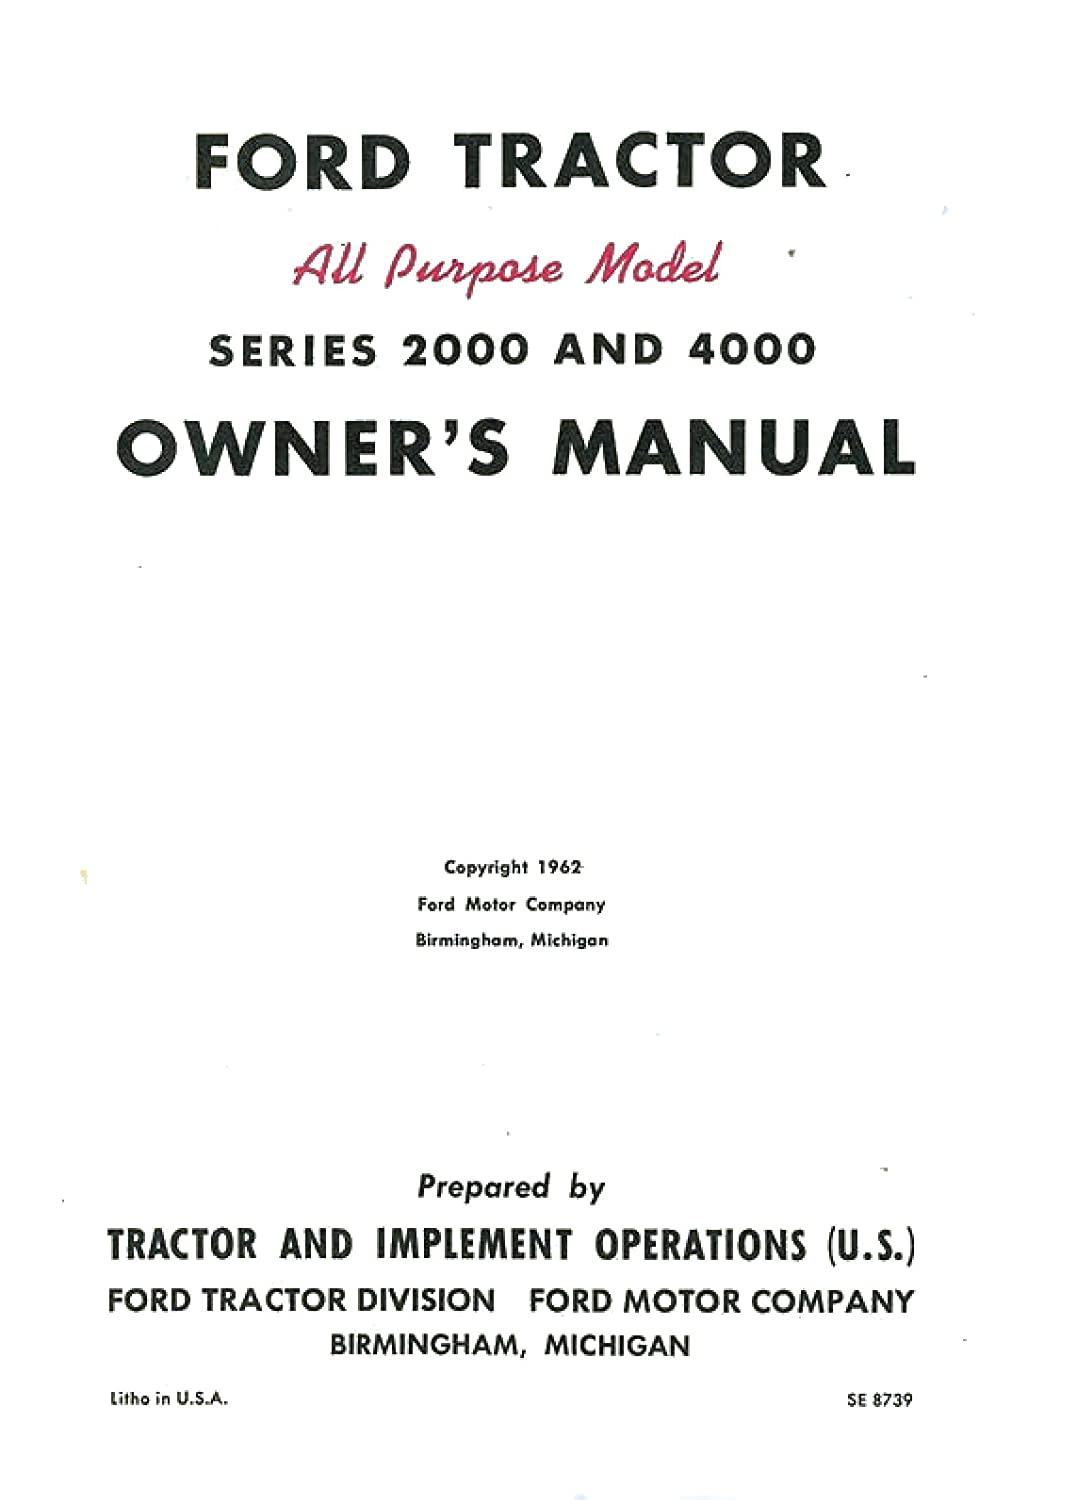 Ford 3910 Manual Tractor Wiring Diagram Operator Owners Usa Coil Bound Garden Outdoor 1066x1500